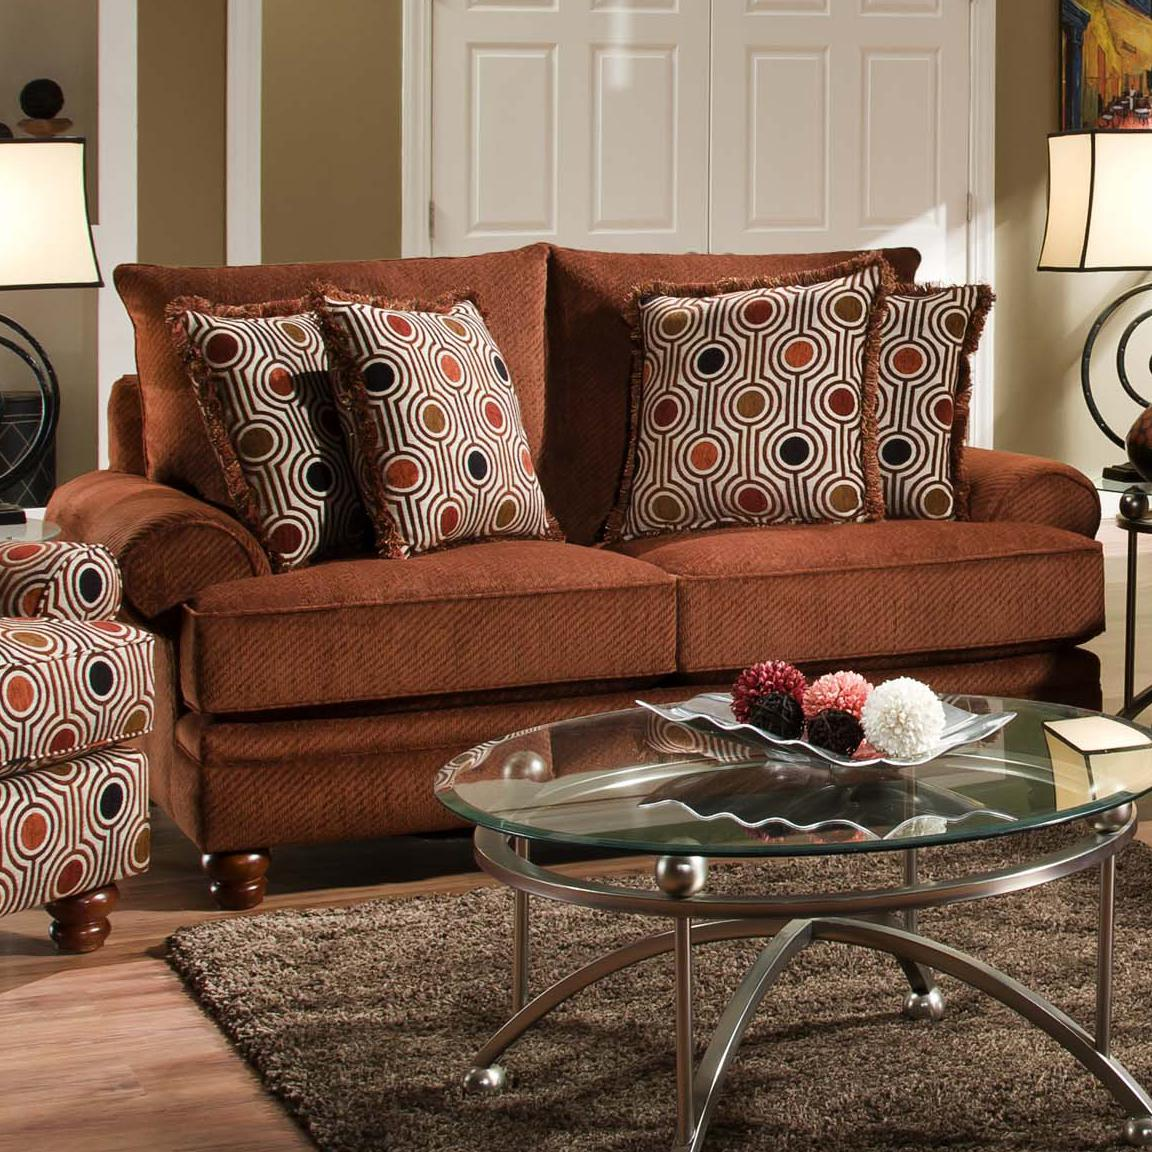 Knoxville Wholesale Furniture: Corinthian 6410 Style